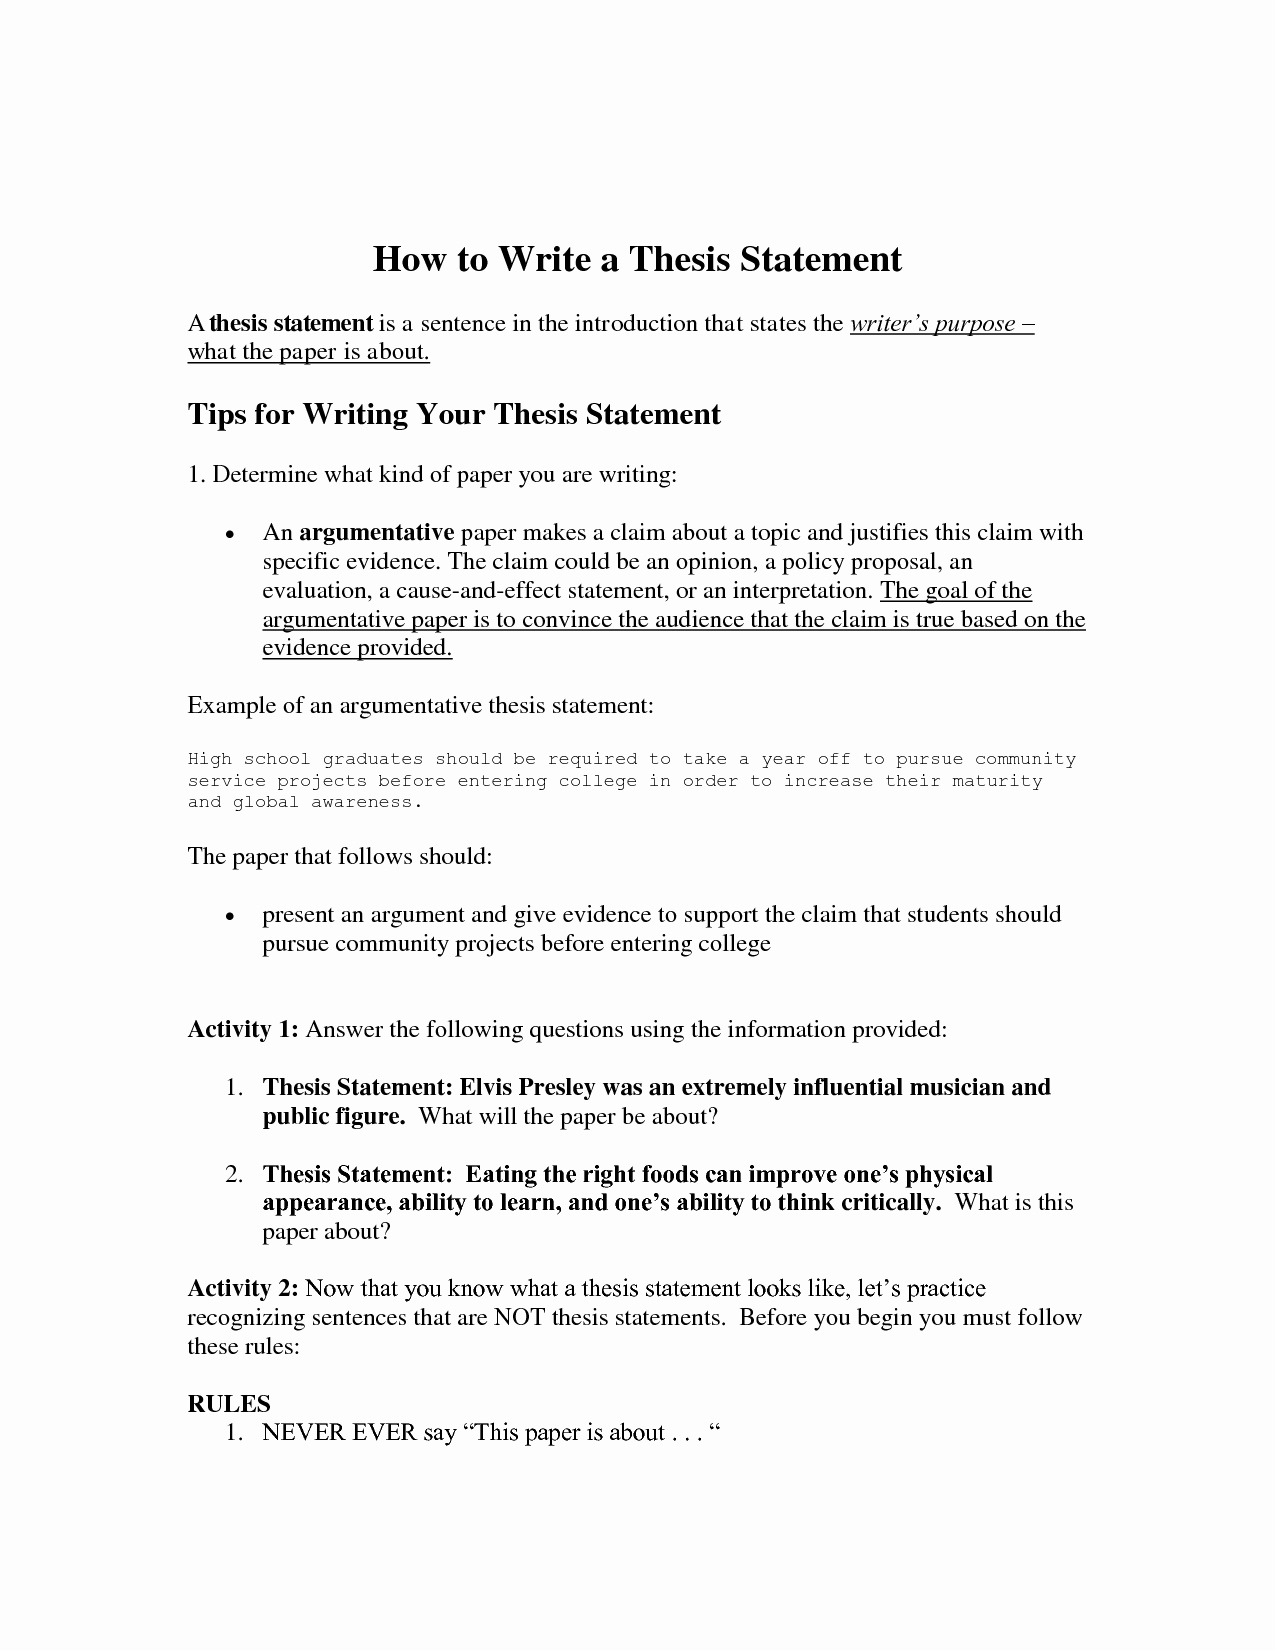 Thesis Statement Practice Worksheet Lovely How to Use Free Essay Samples to Generate Your Own